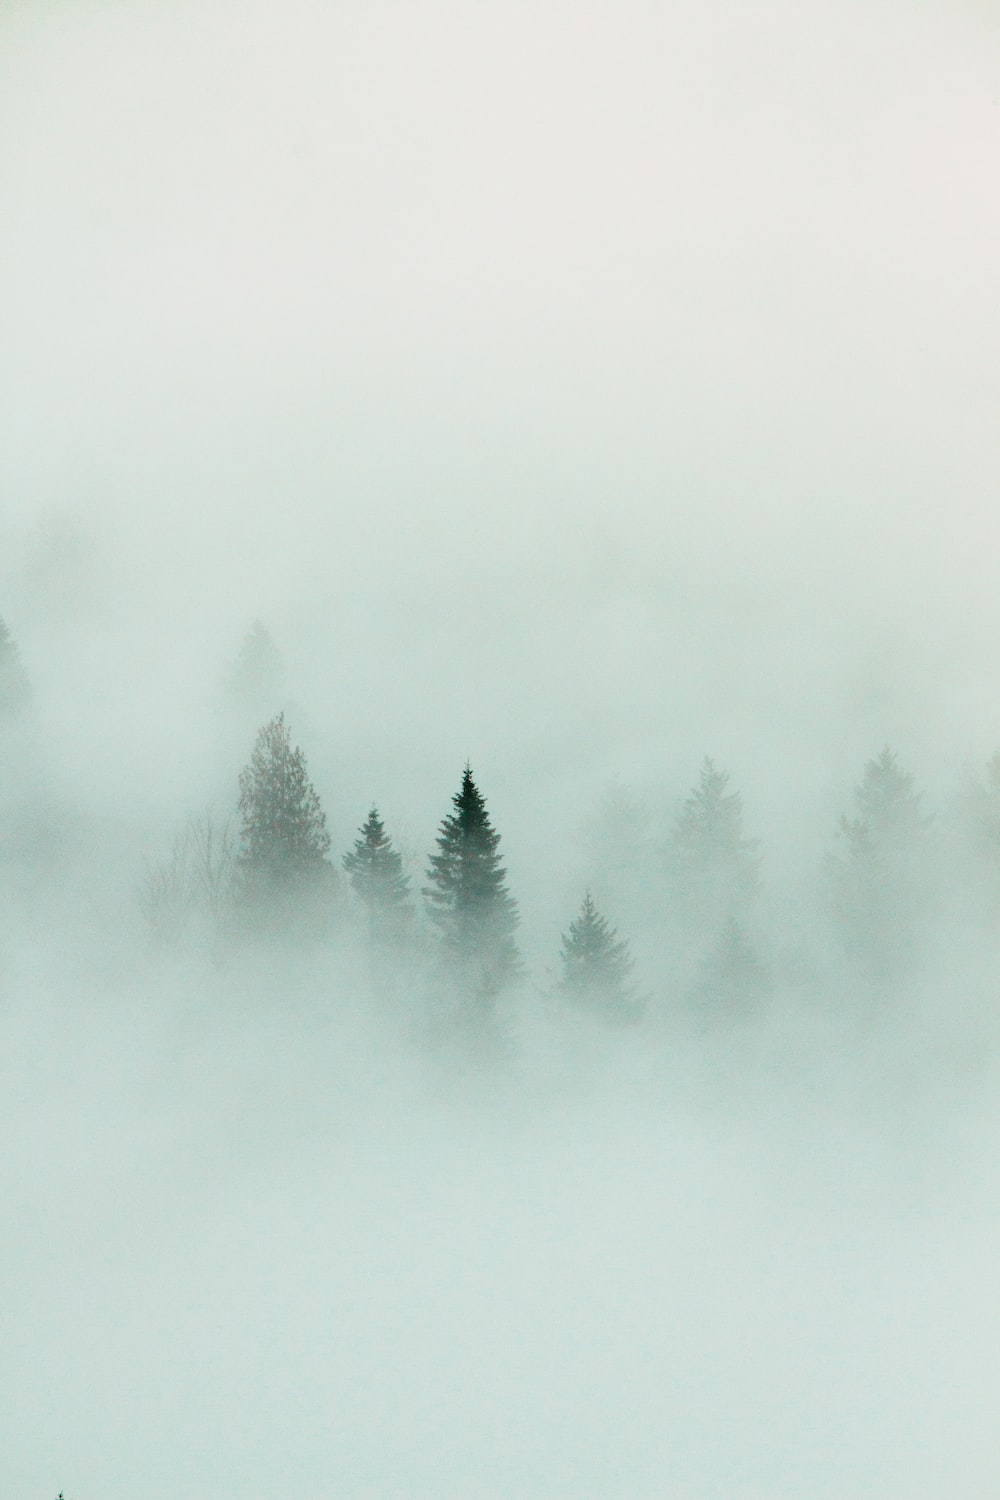 green pine trees covered with white fog